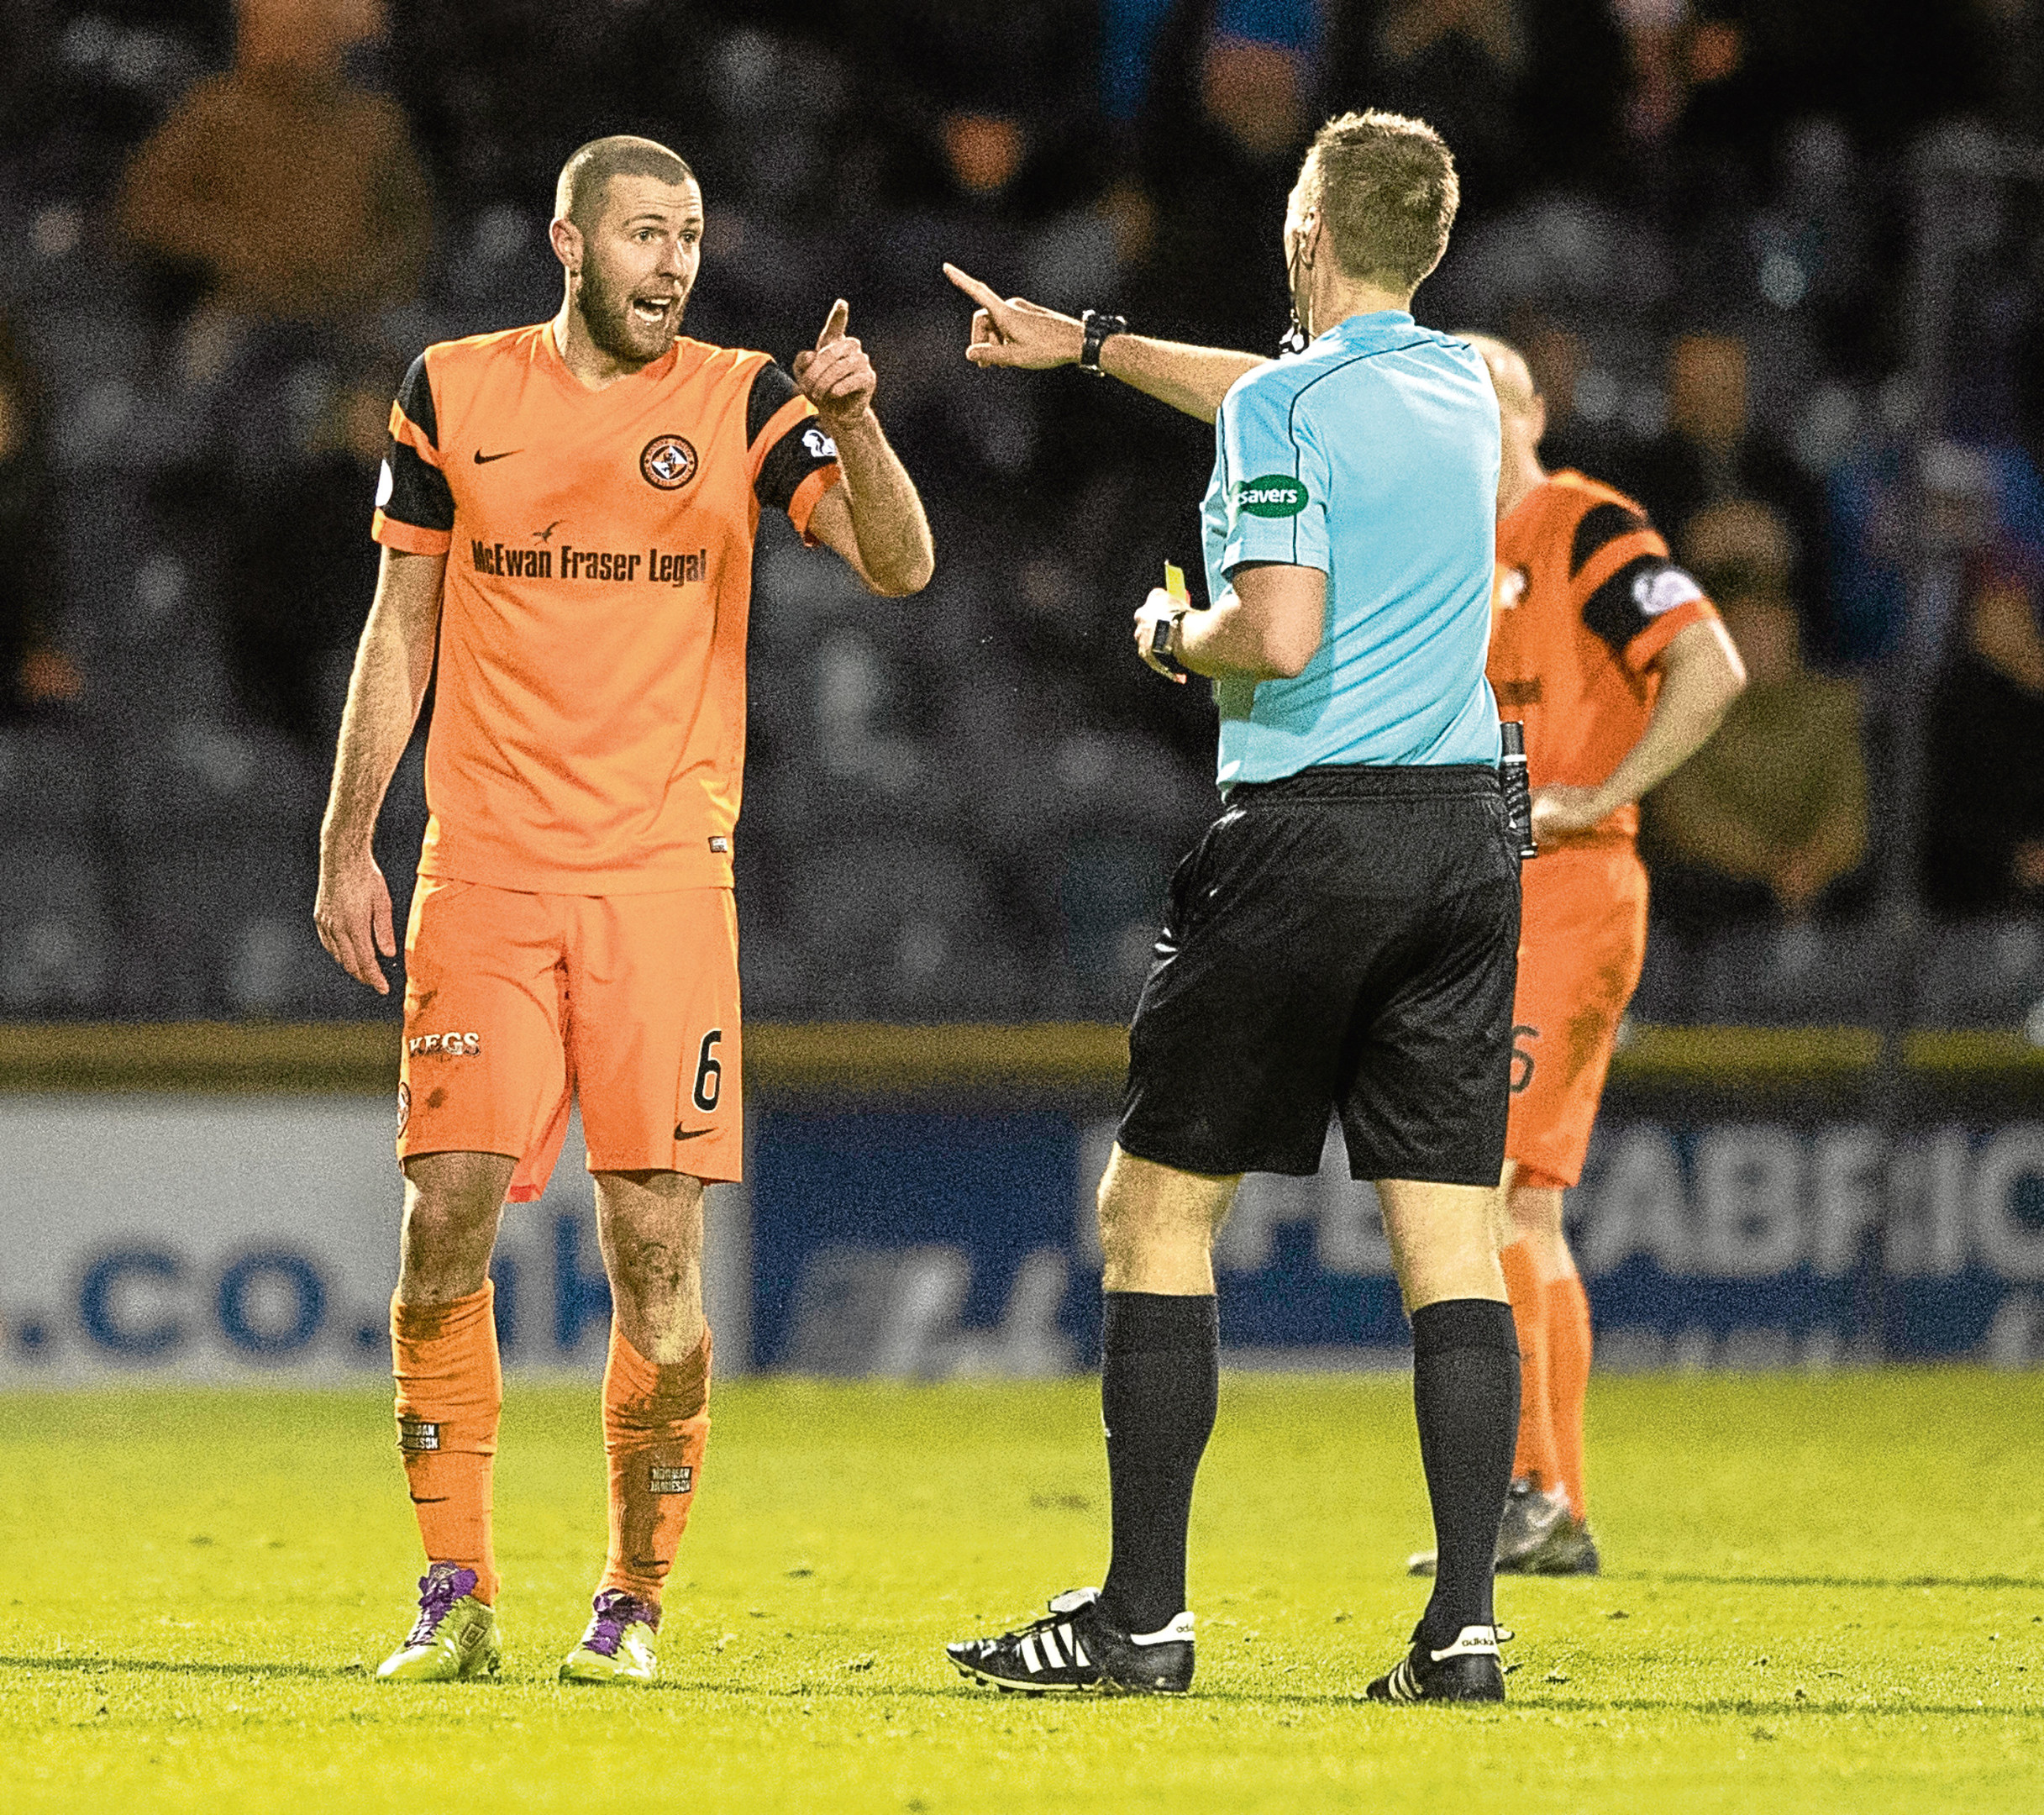 Dundee United's Lewis Toshney talks to referee Steven Kirkland during the goalless draw at Raith.